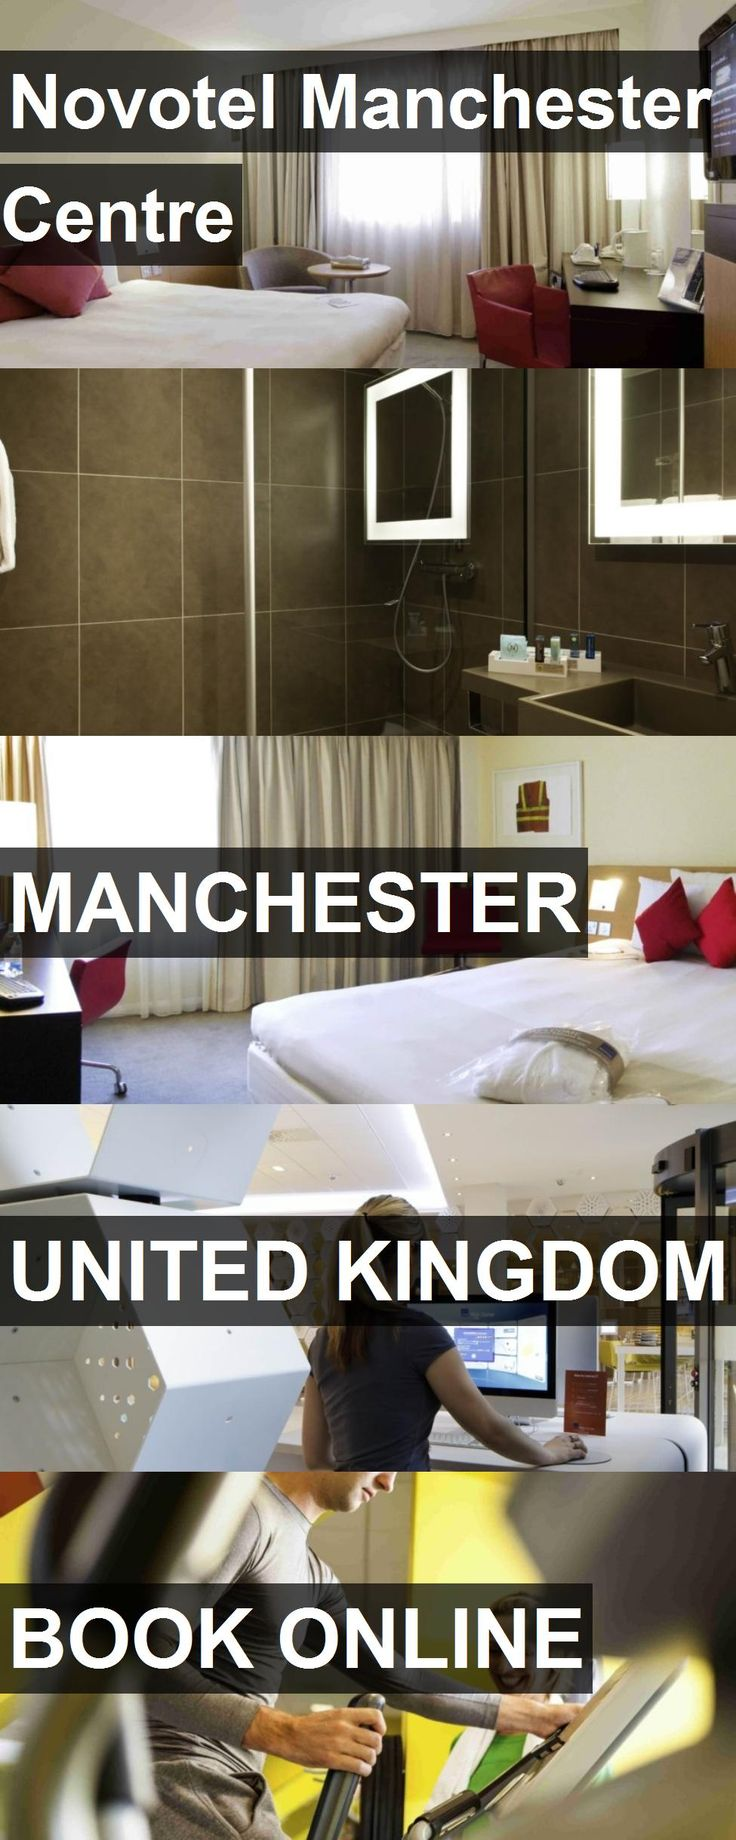 Hotel Novotel Manchester Centre in Manchester, United Kingdom. For more information, photos, reviews and best prices please follow the link. #UnitedKingdom #Manchester #travel #vacation #hotel